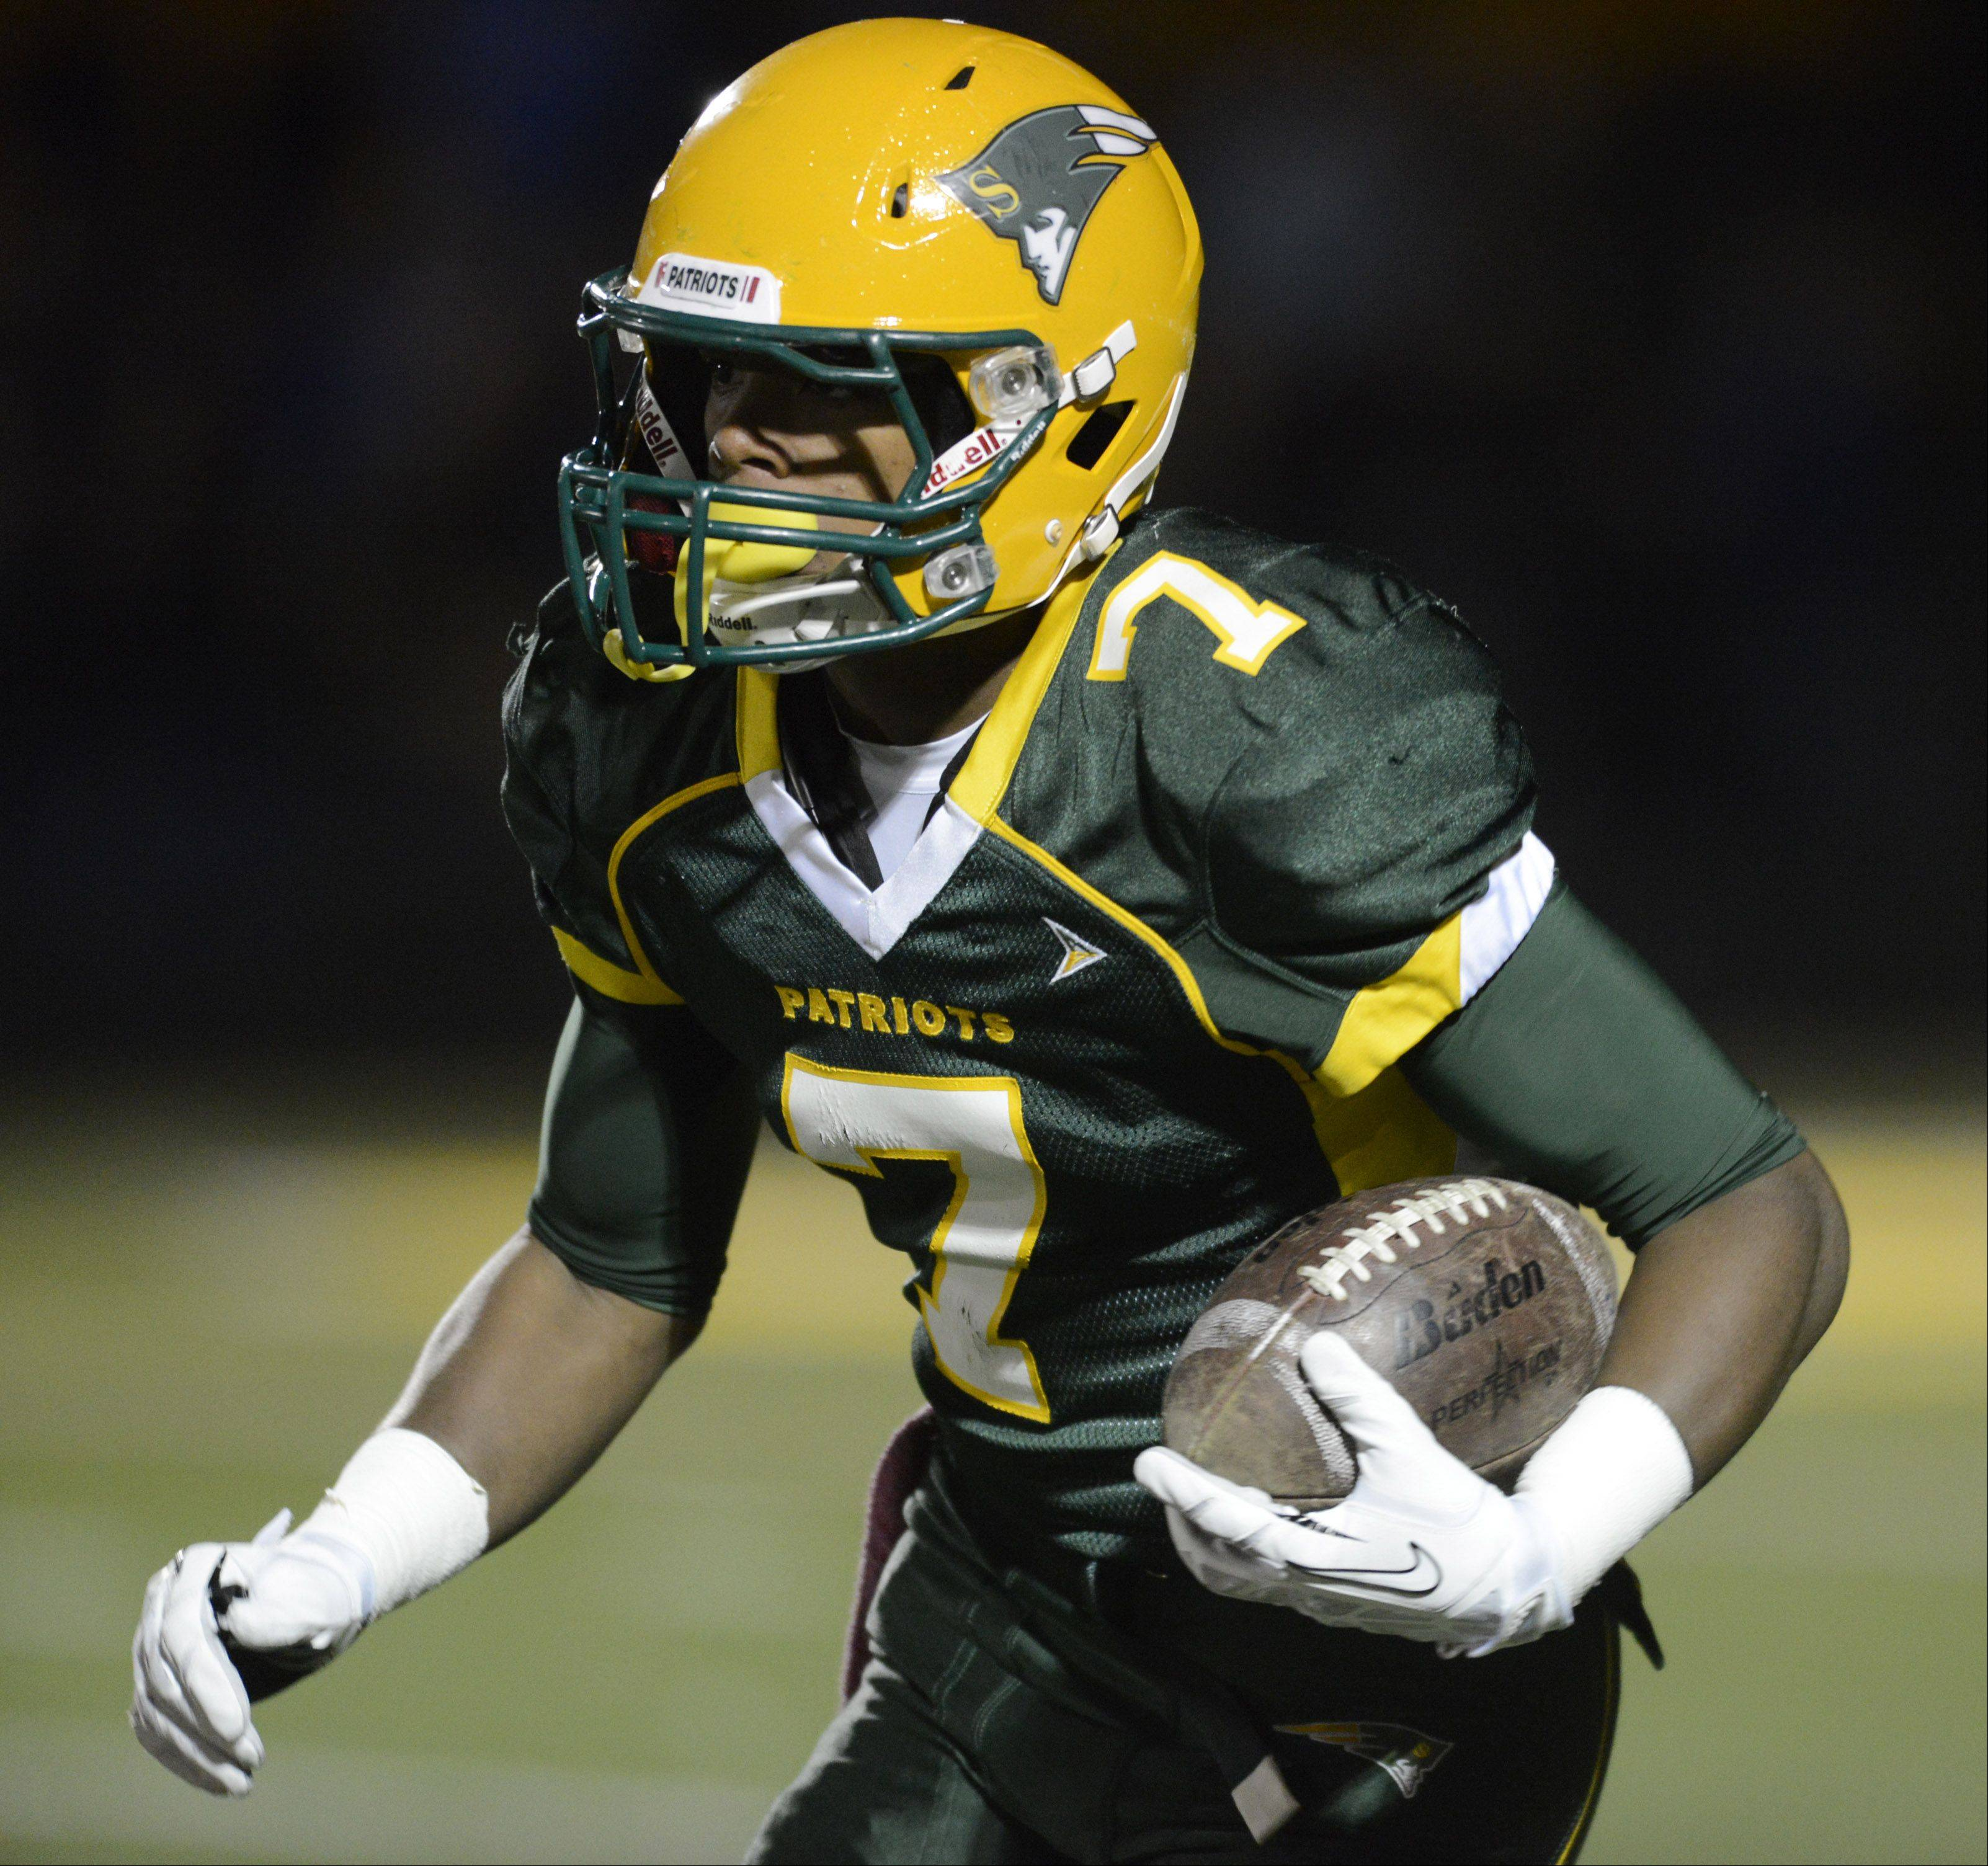 Stevenson's Cameron Green carries the ball on a kickoff return.